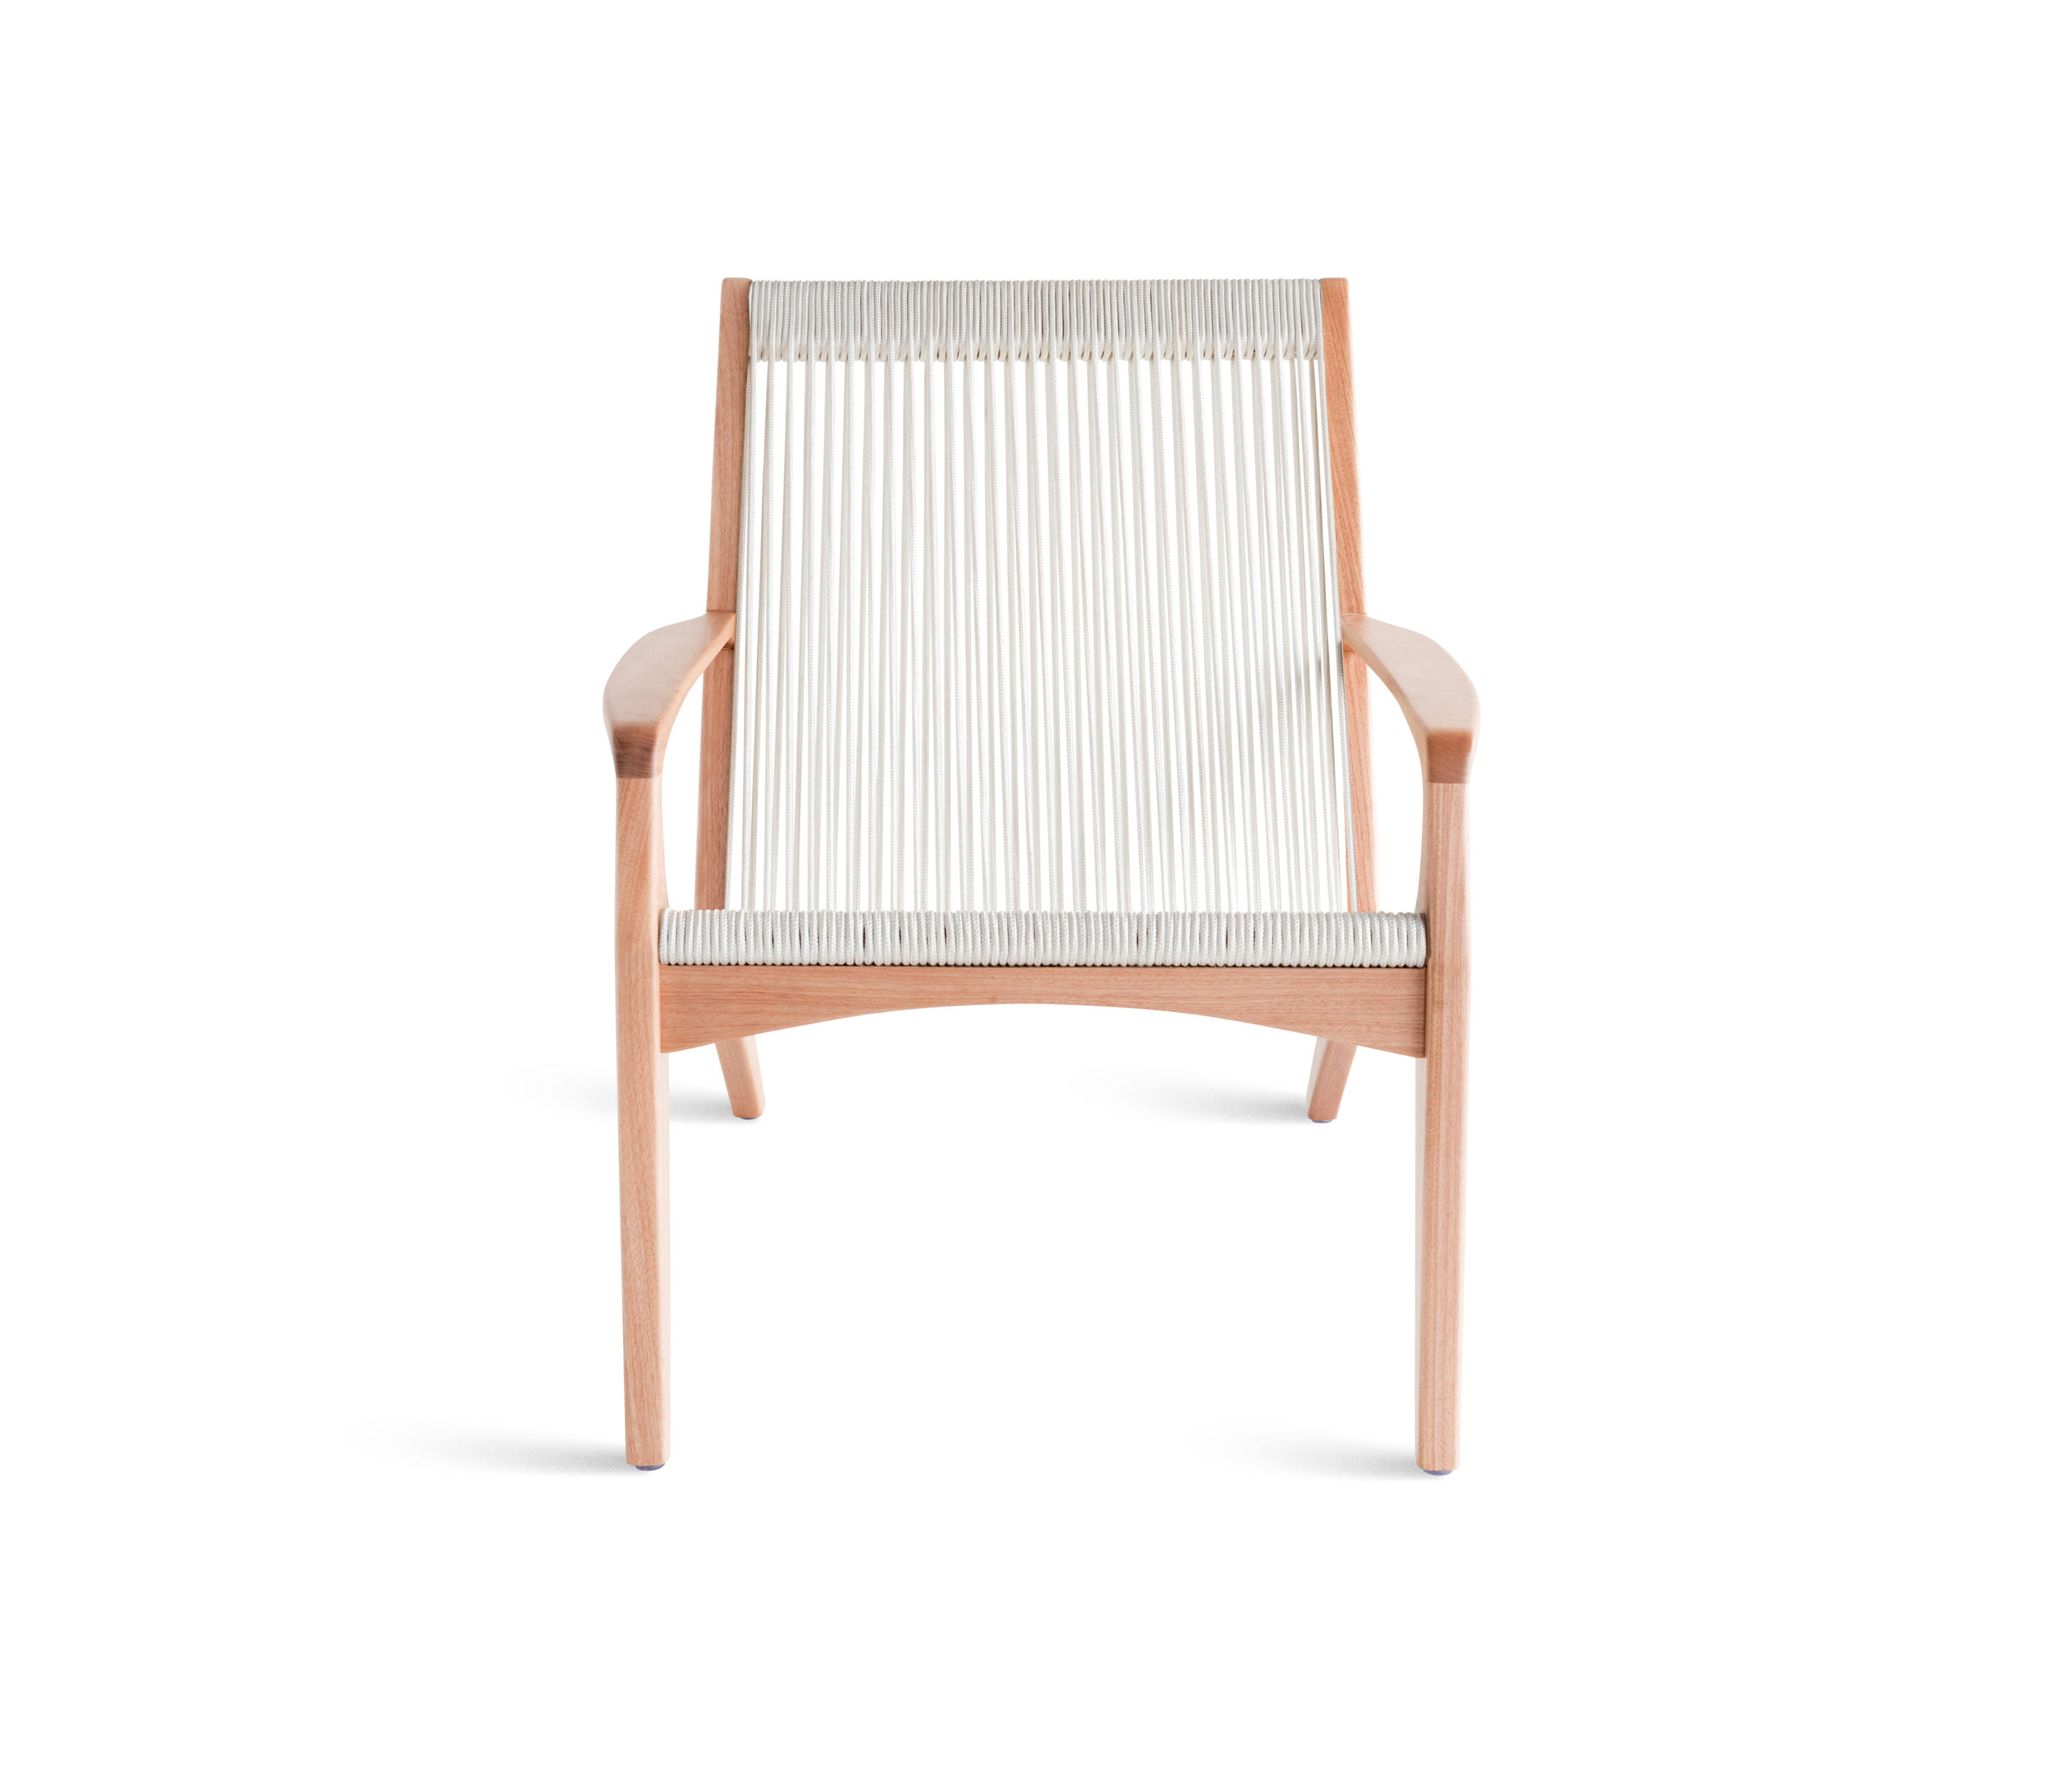 Gisele Lounge Chair Armchairs From Sossego Architonic